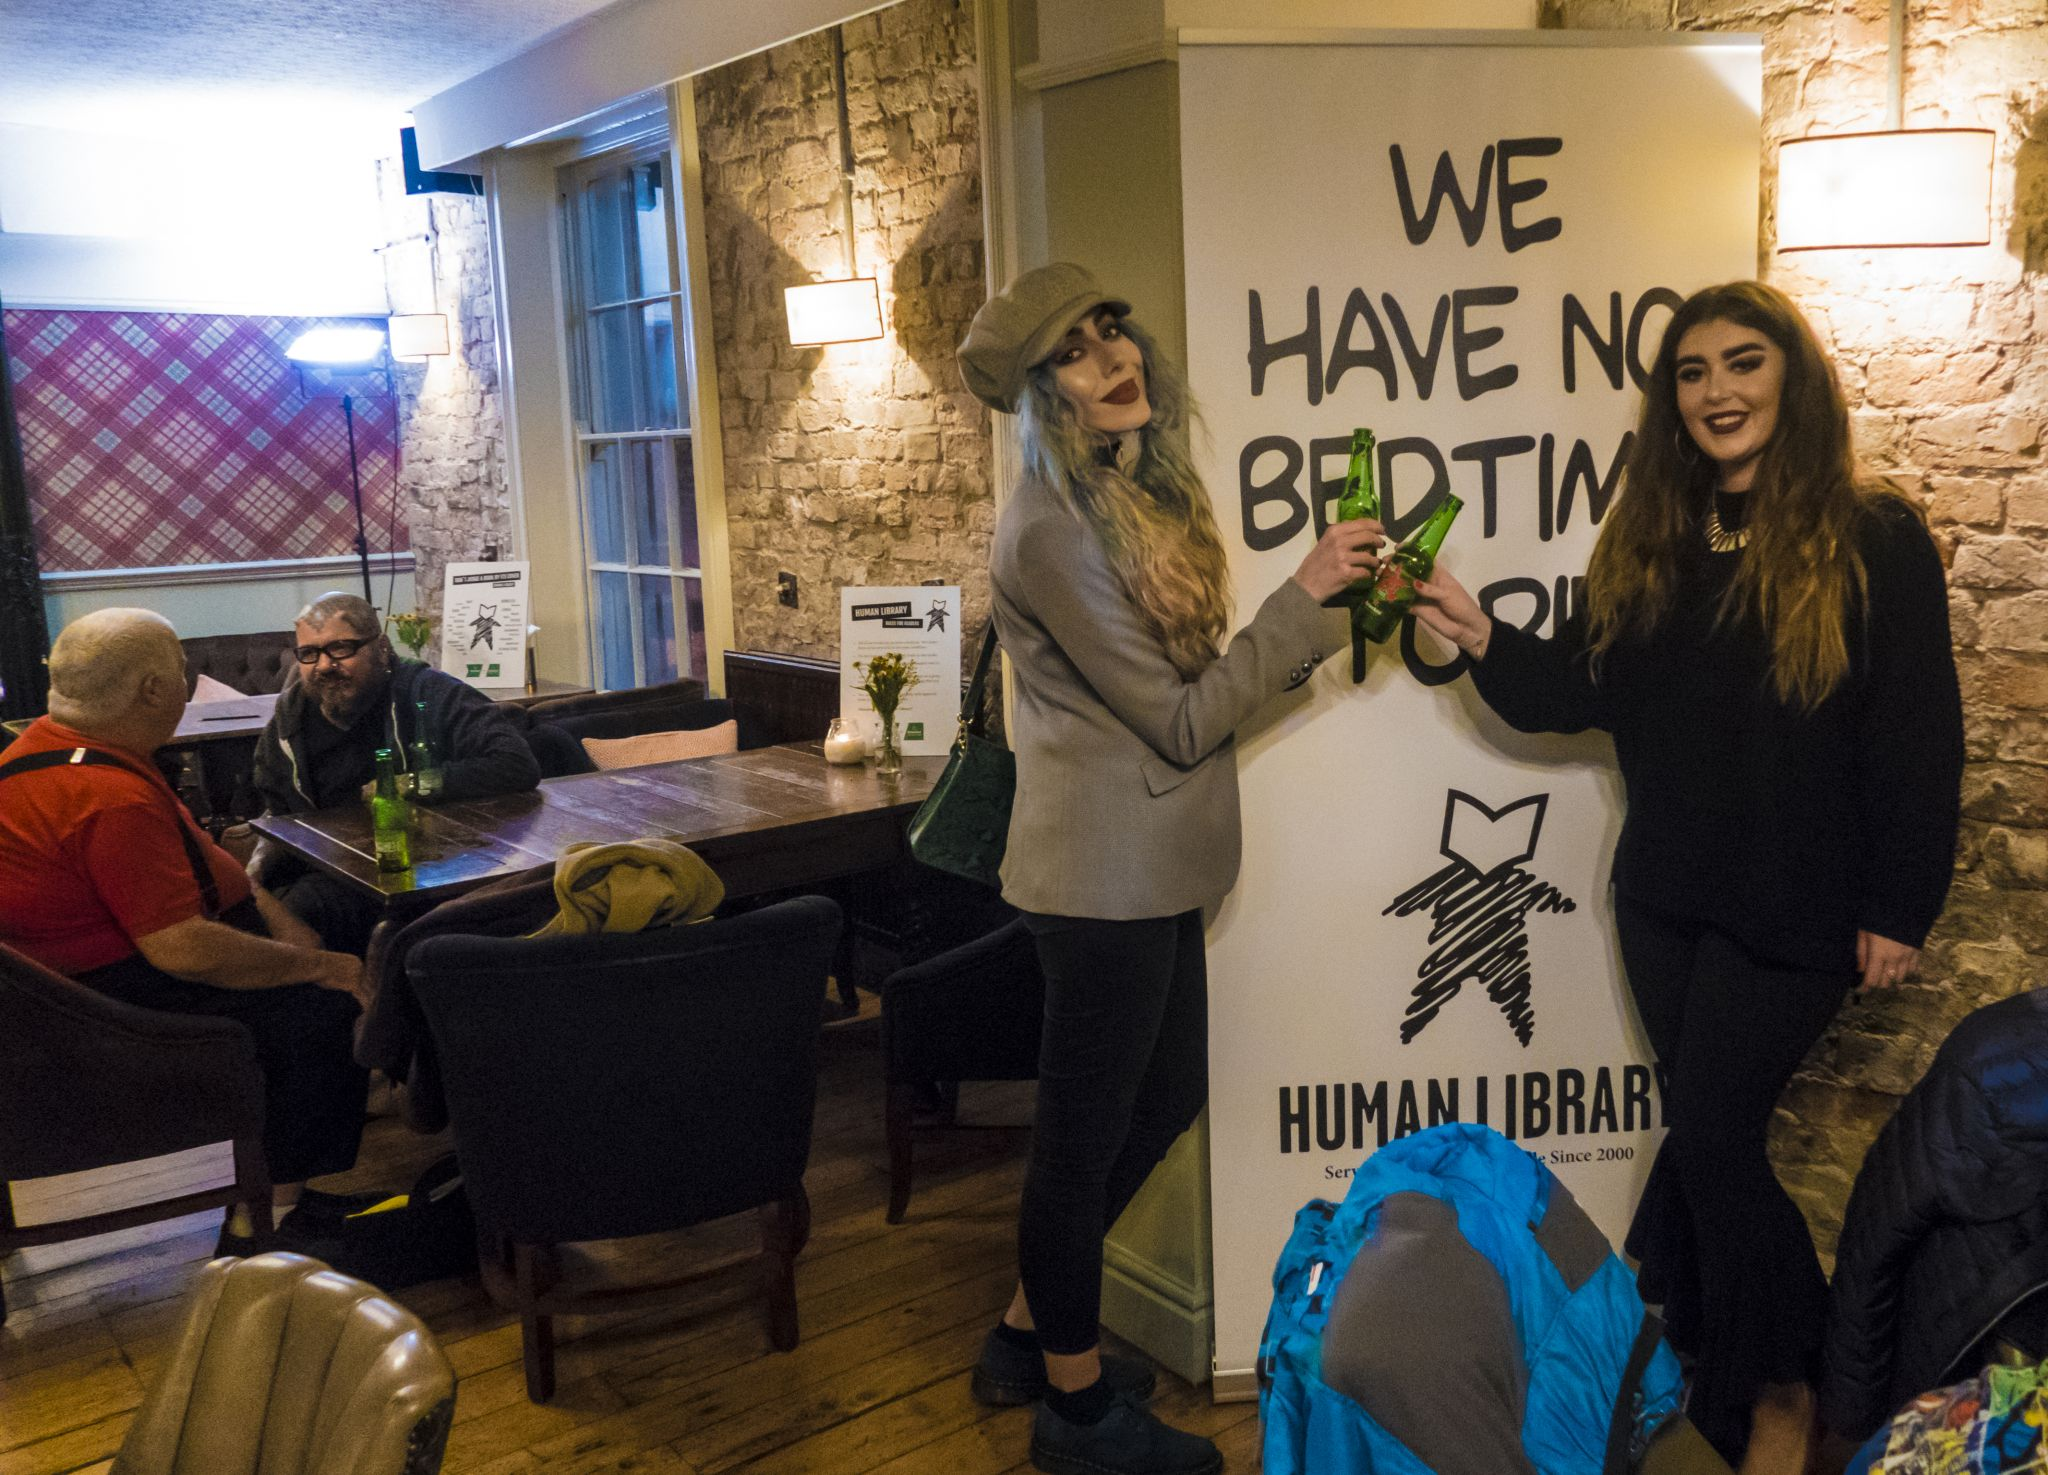 Heineken The Human Library with Stephi LaReine & Marietta Daly